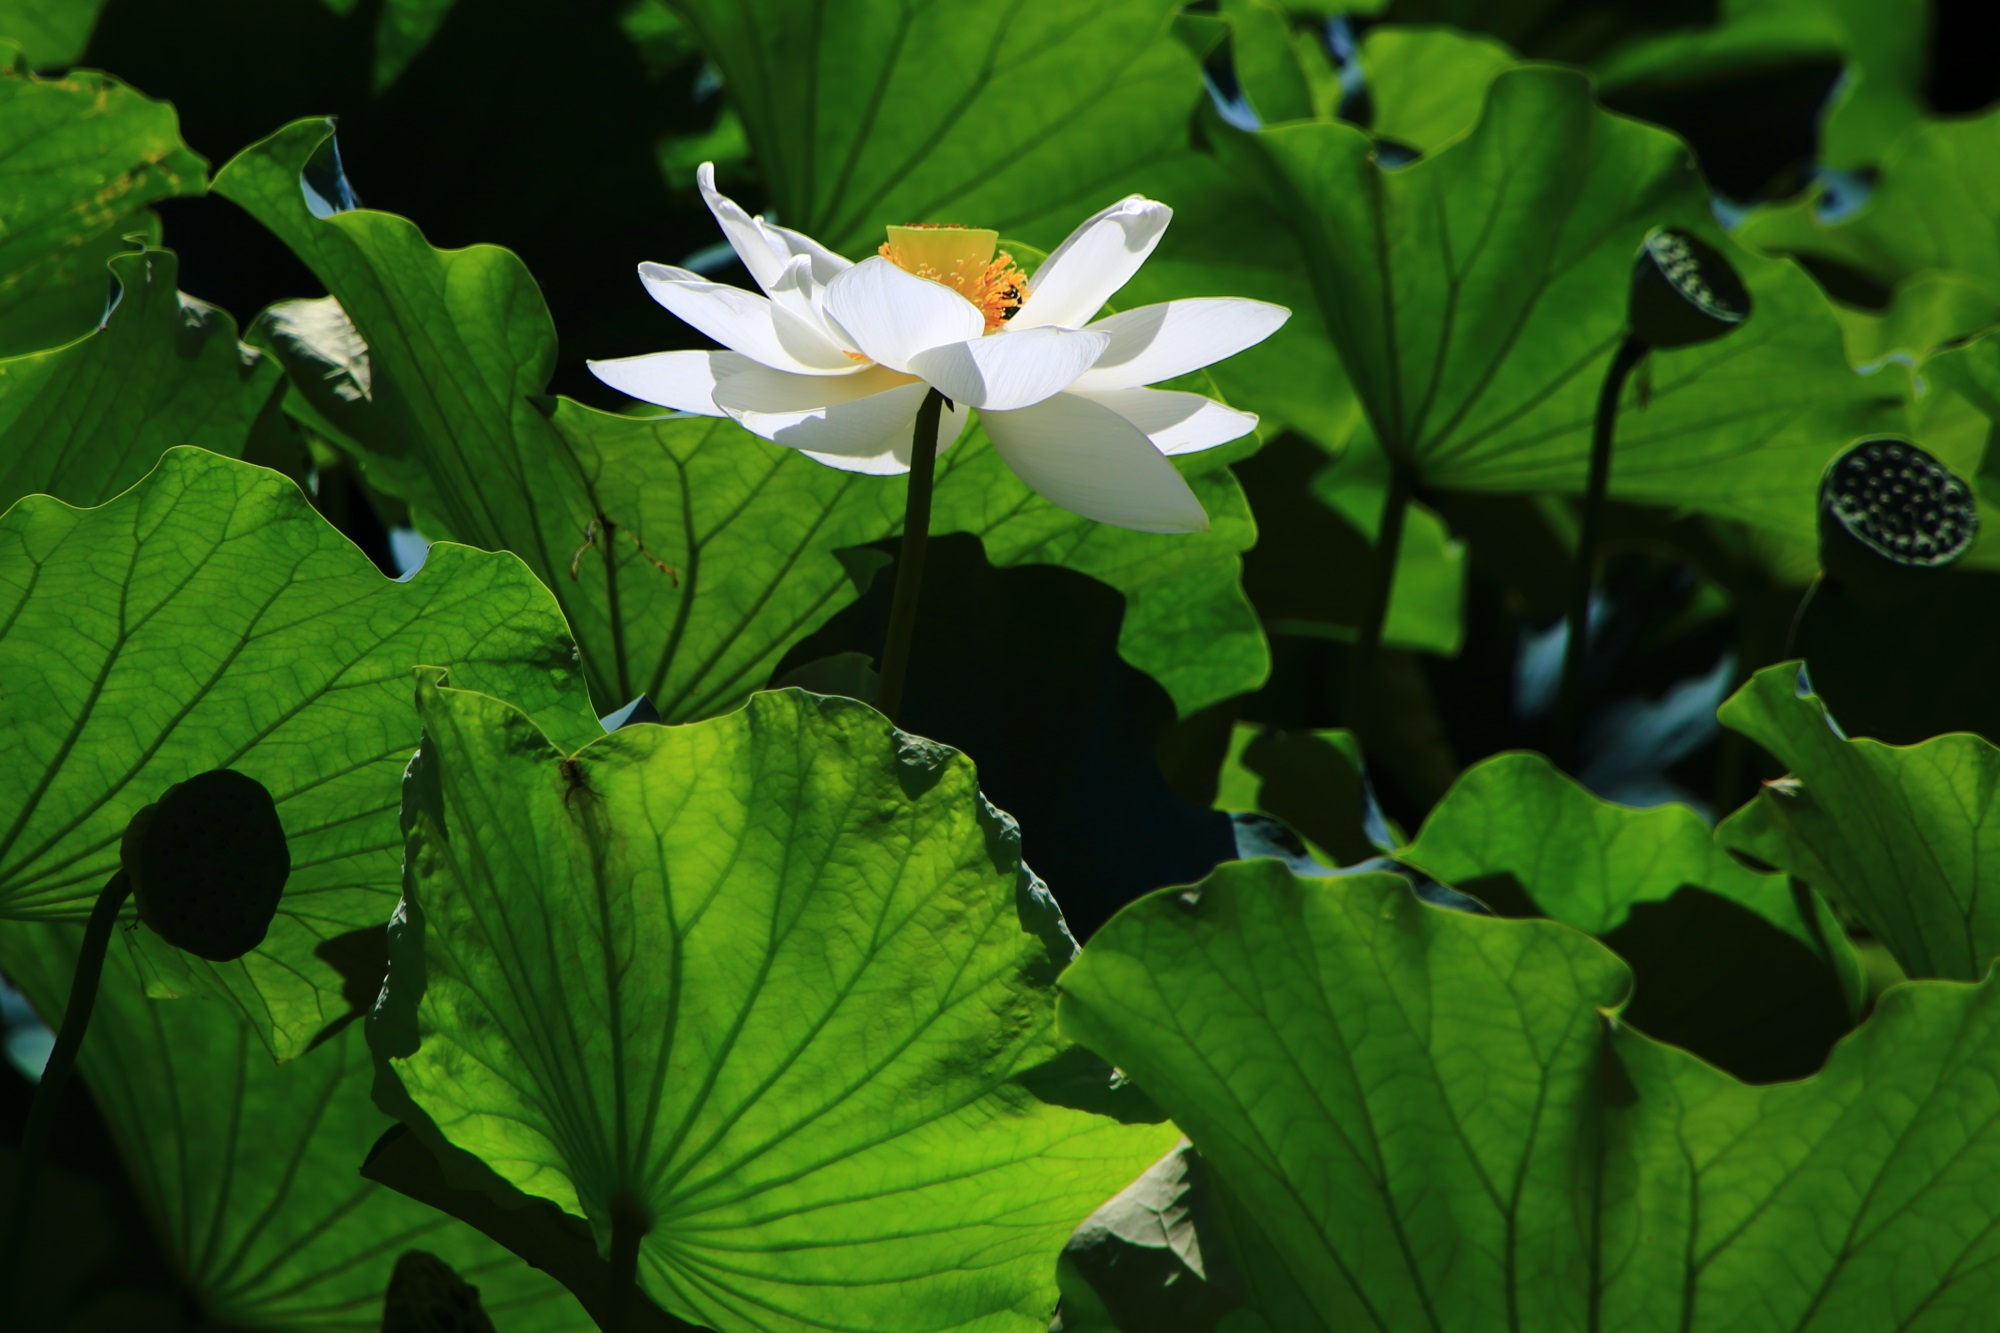 Kyoto Osawa-no-ike Pond lotus 大覚寺 大沢池 はす